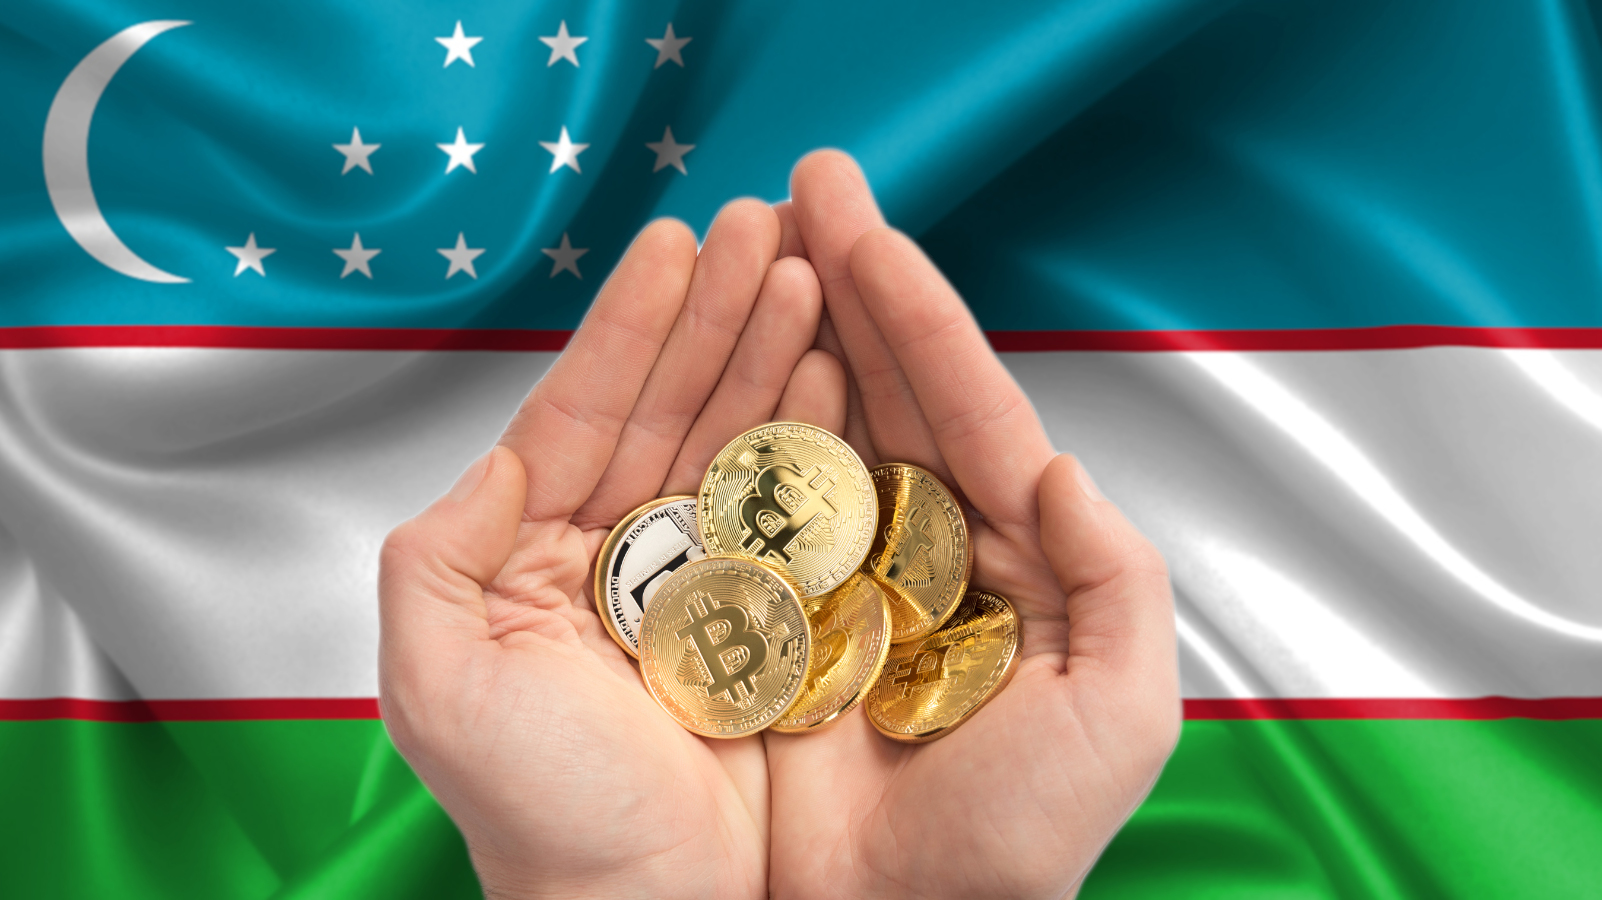 Uzbekistan warns users to stay away from unlicensed crypto exchangess